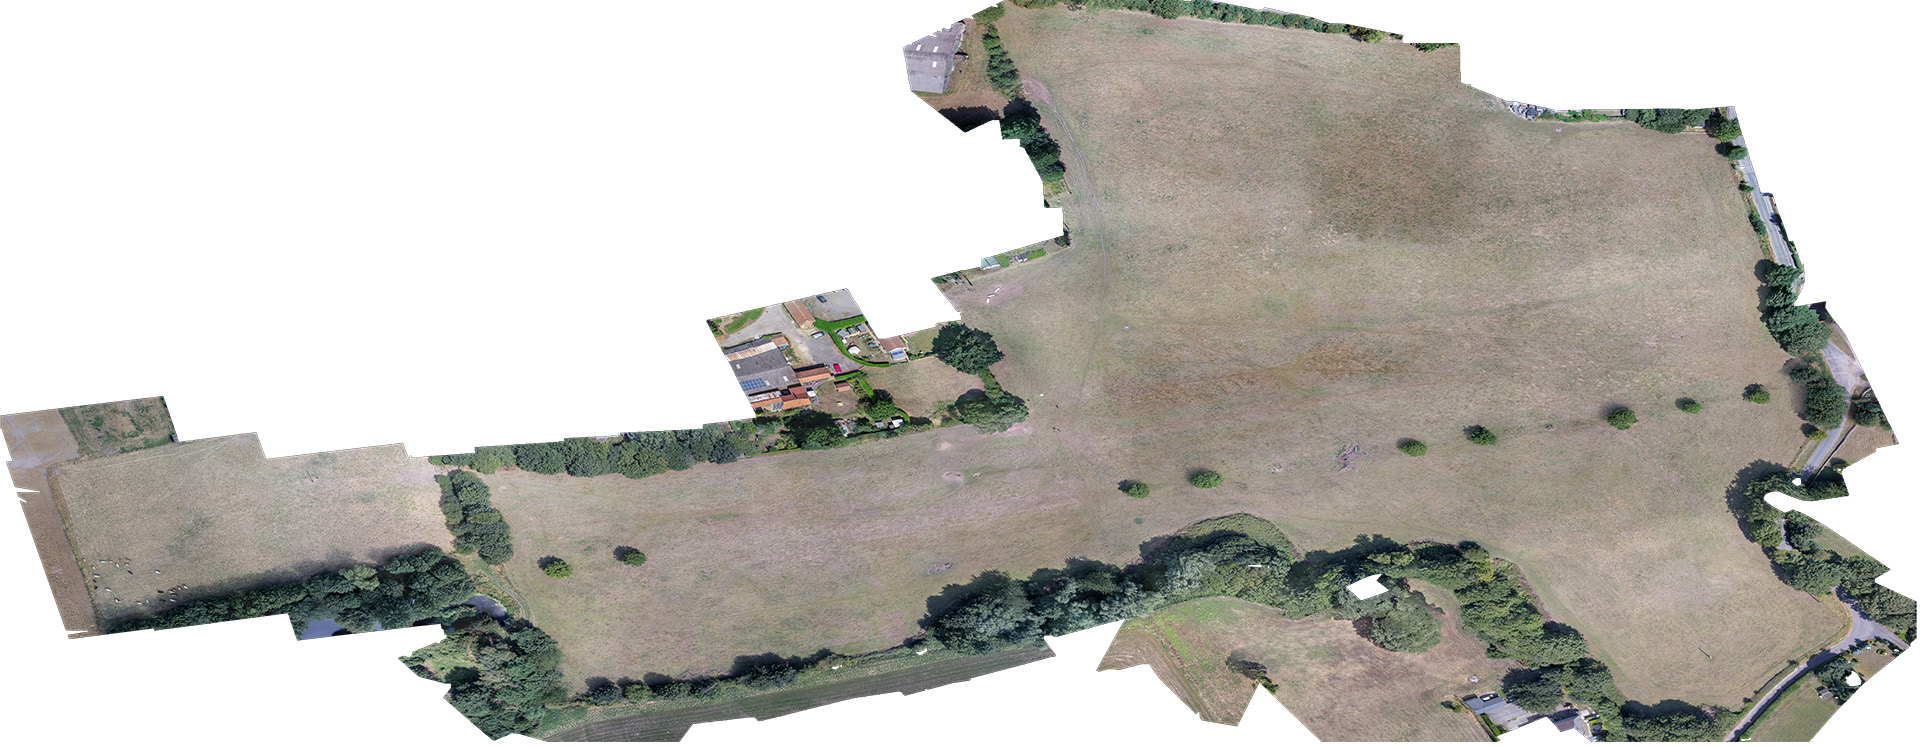 Orthomosaic image of Harpswell archaeology site